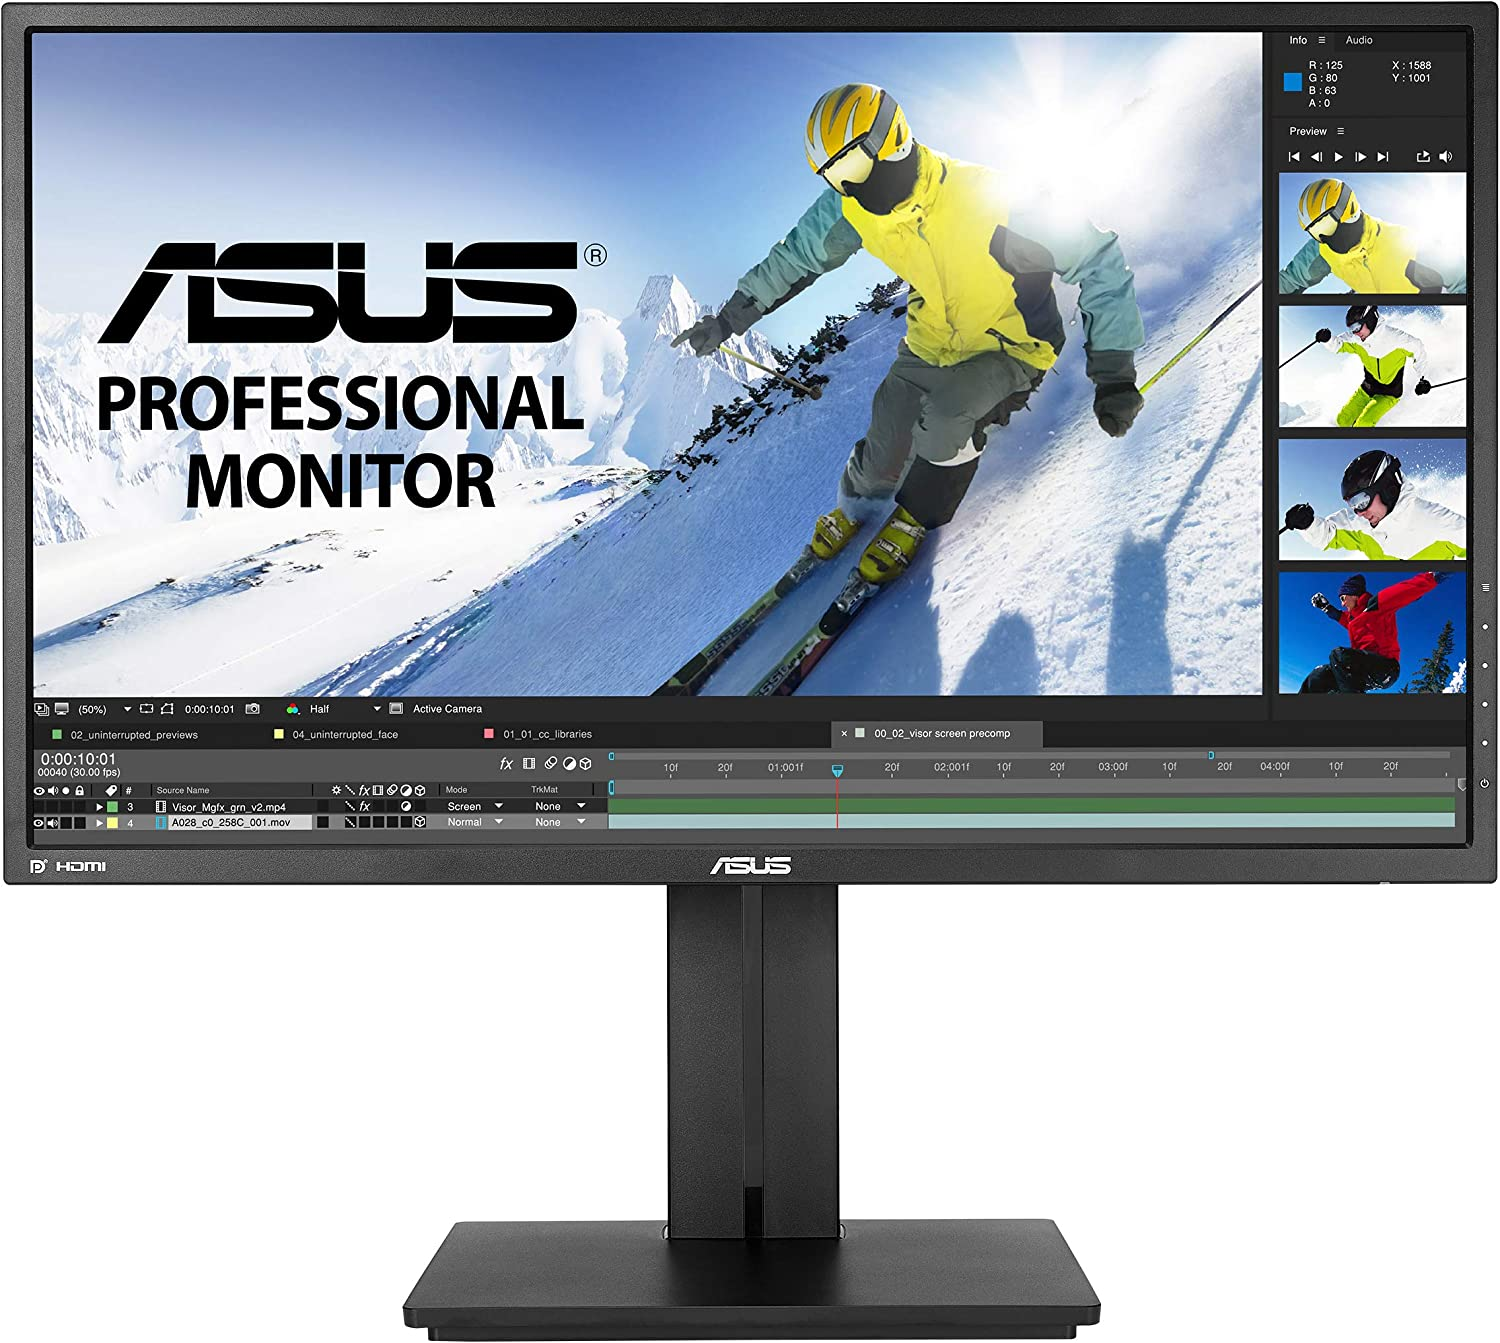 ASUS PB258Q - best dual monitor setup for programming